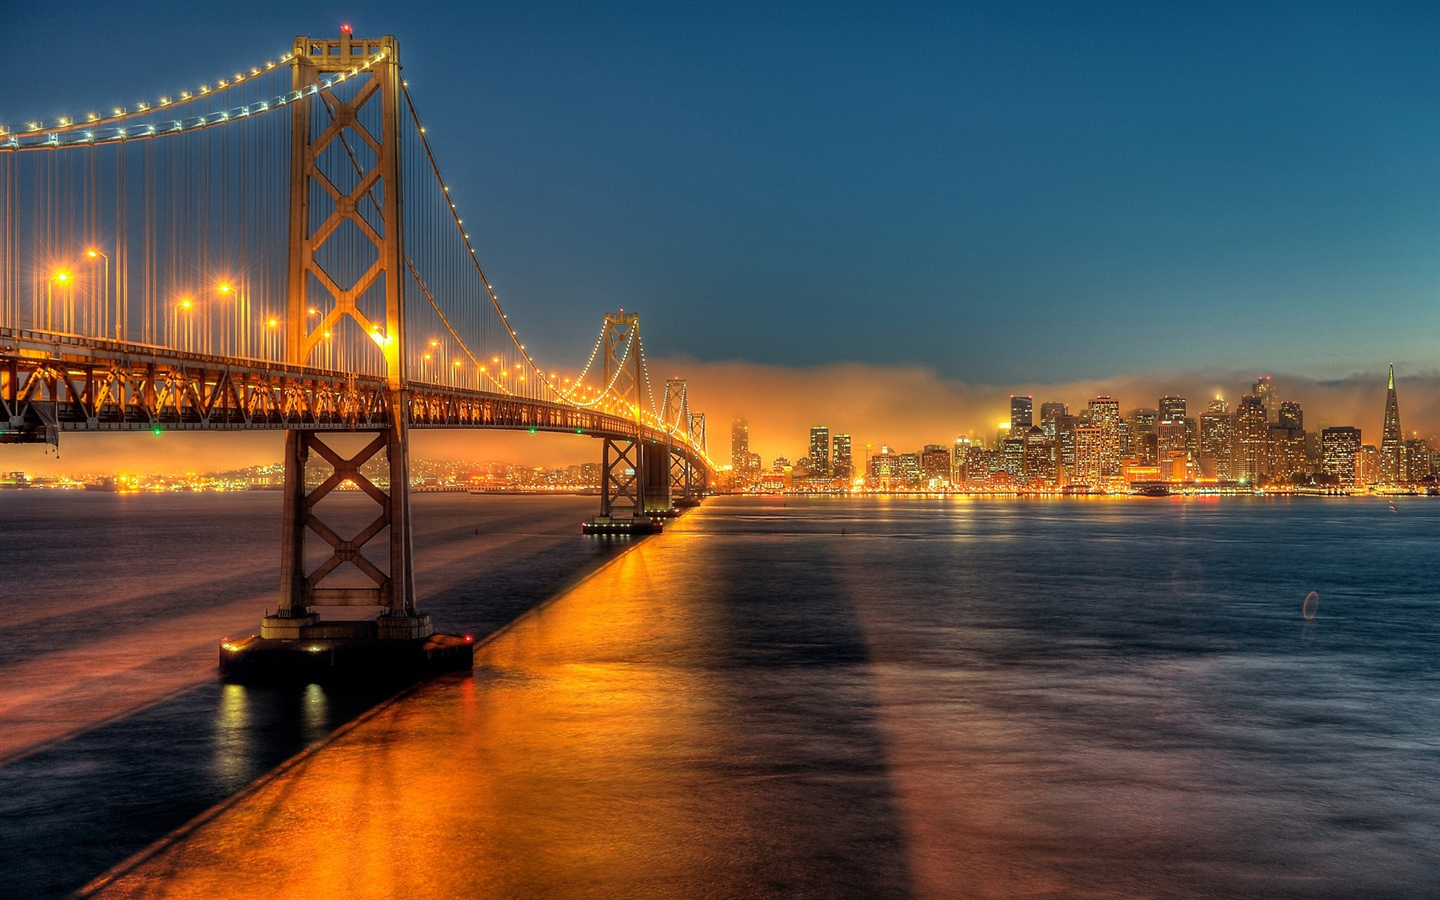 Game Night besides Northern Lights Night Forest Trees Stars 1366x768 as well USA California San Francisco Bay Bridge City Night Lights 1440x900 together with City Skyline At Night wallpapers 33651 1920x1440 1 as well 2011 07 01. on night wallpaper